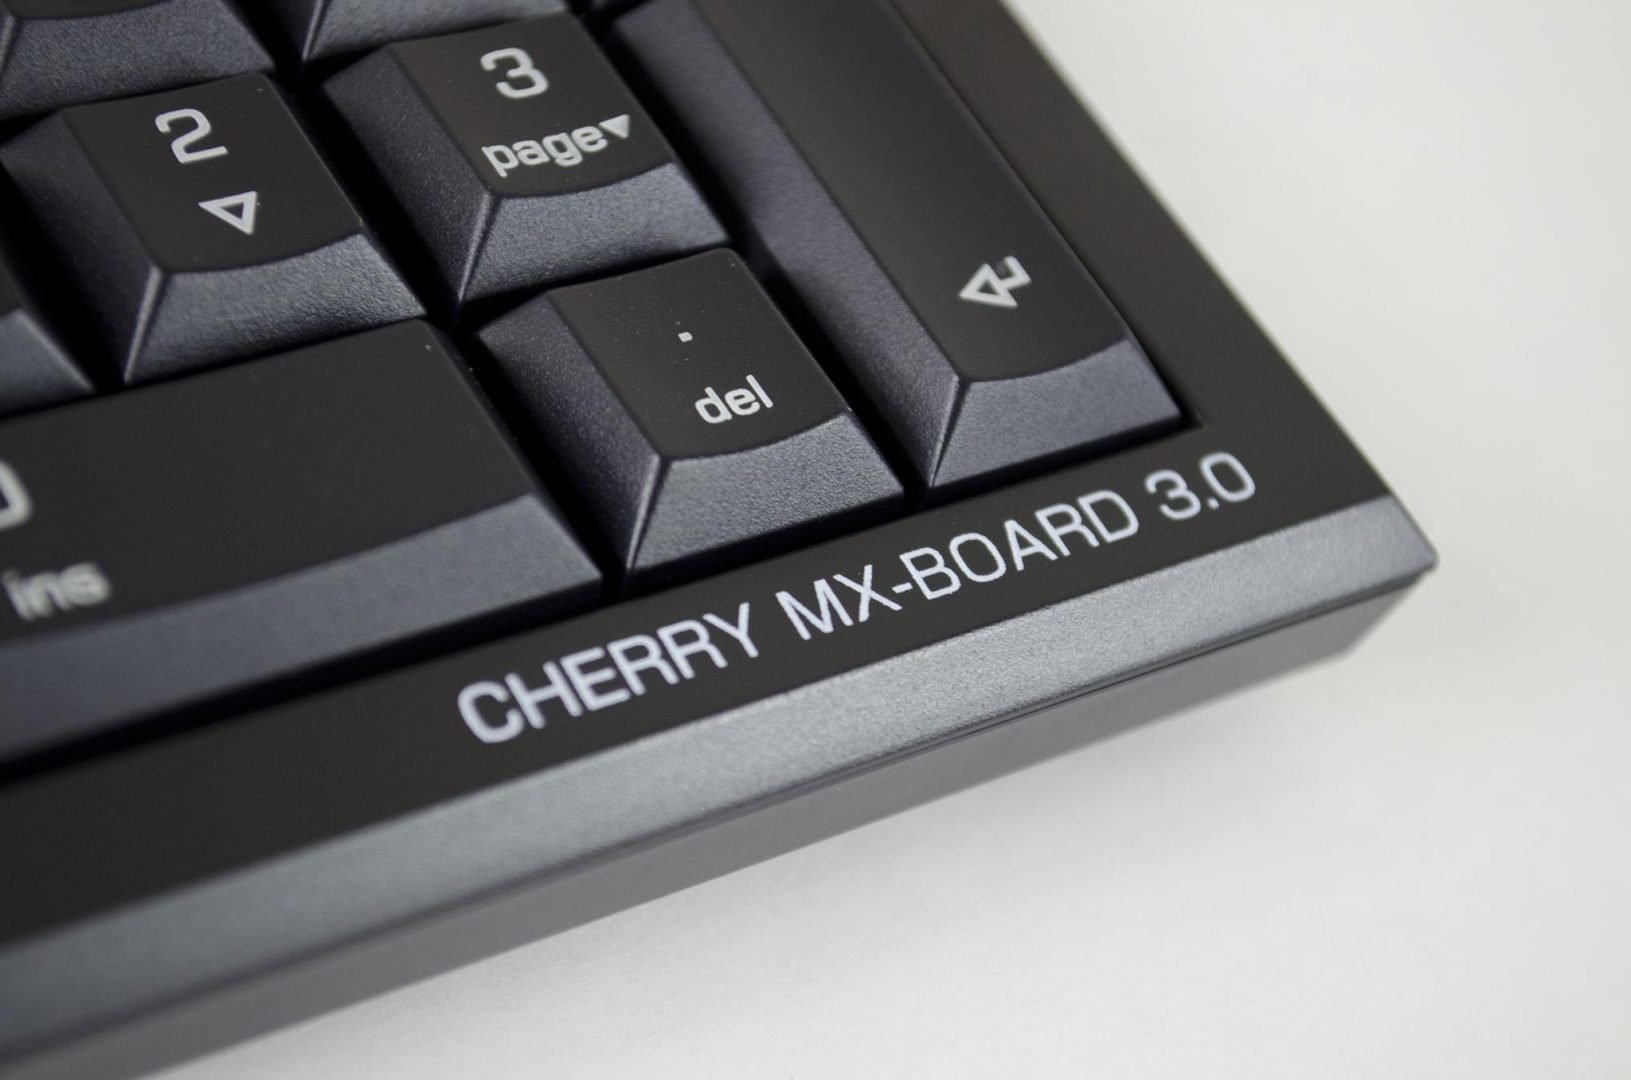 Cherry MX Board 3_4